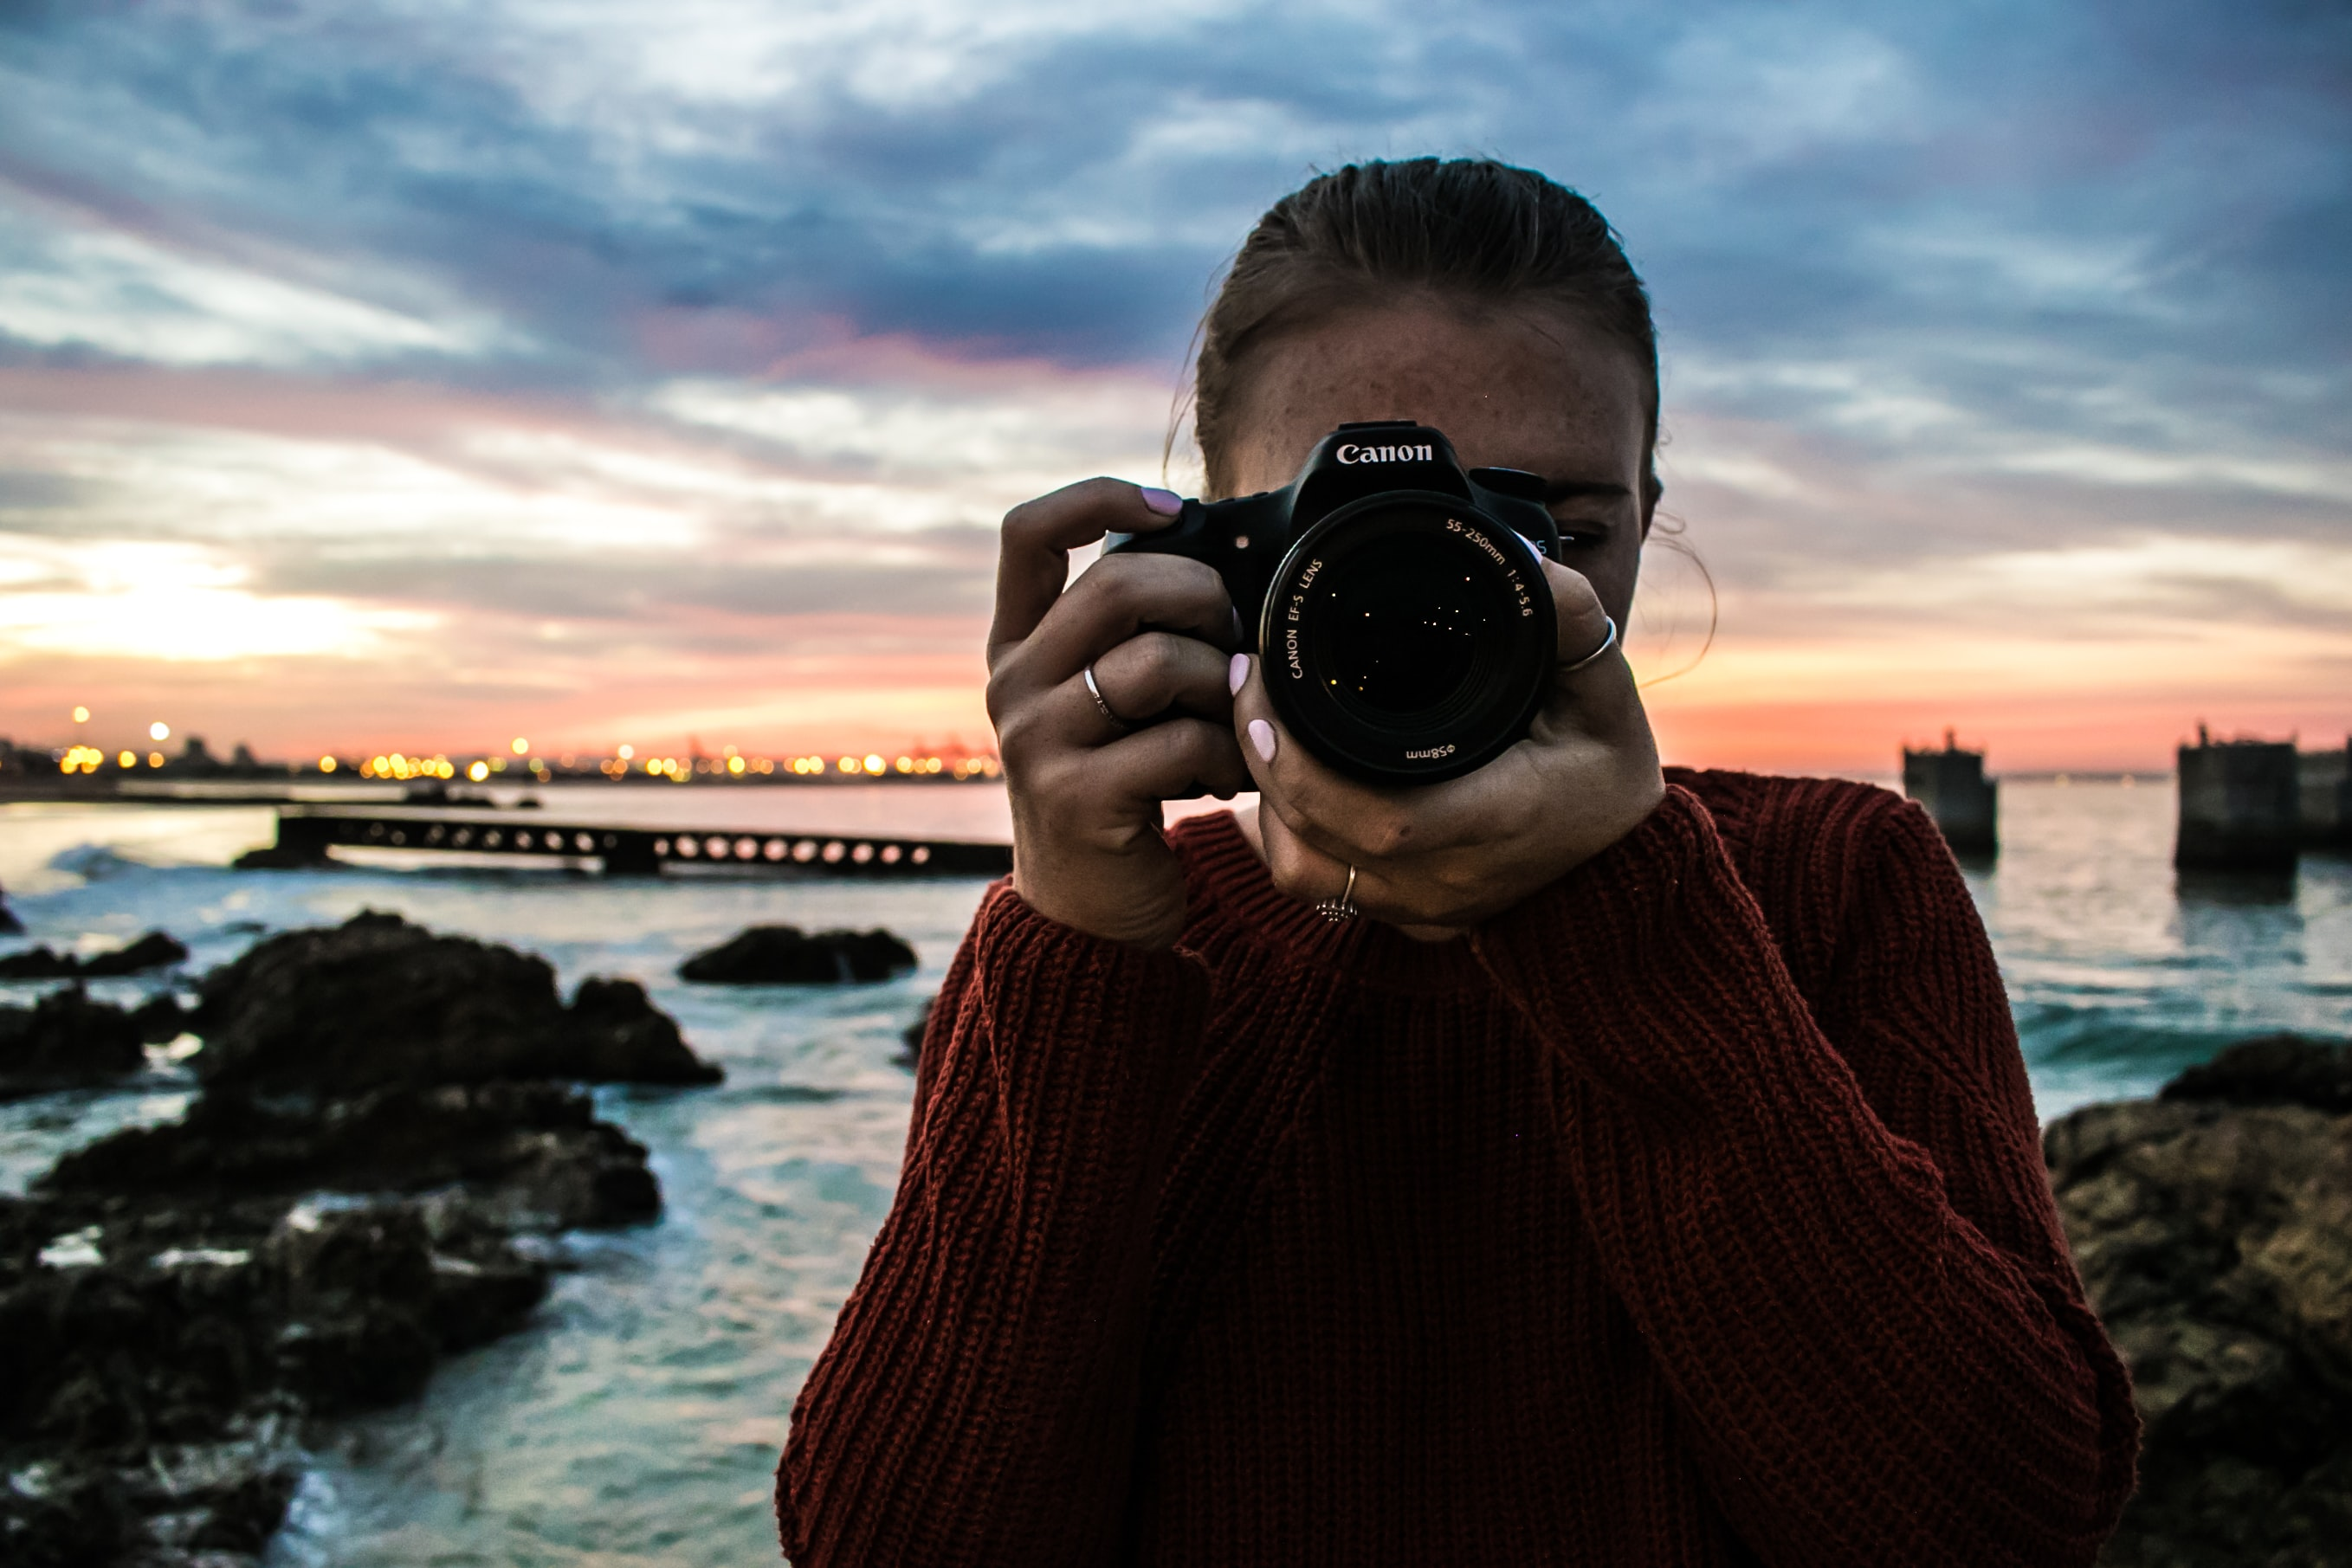 Female photographer with a Canon camera at the rocky seashore of Port Elizabeth during sunset